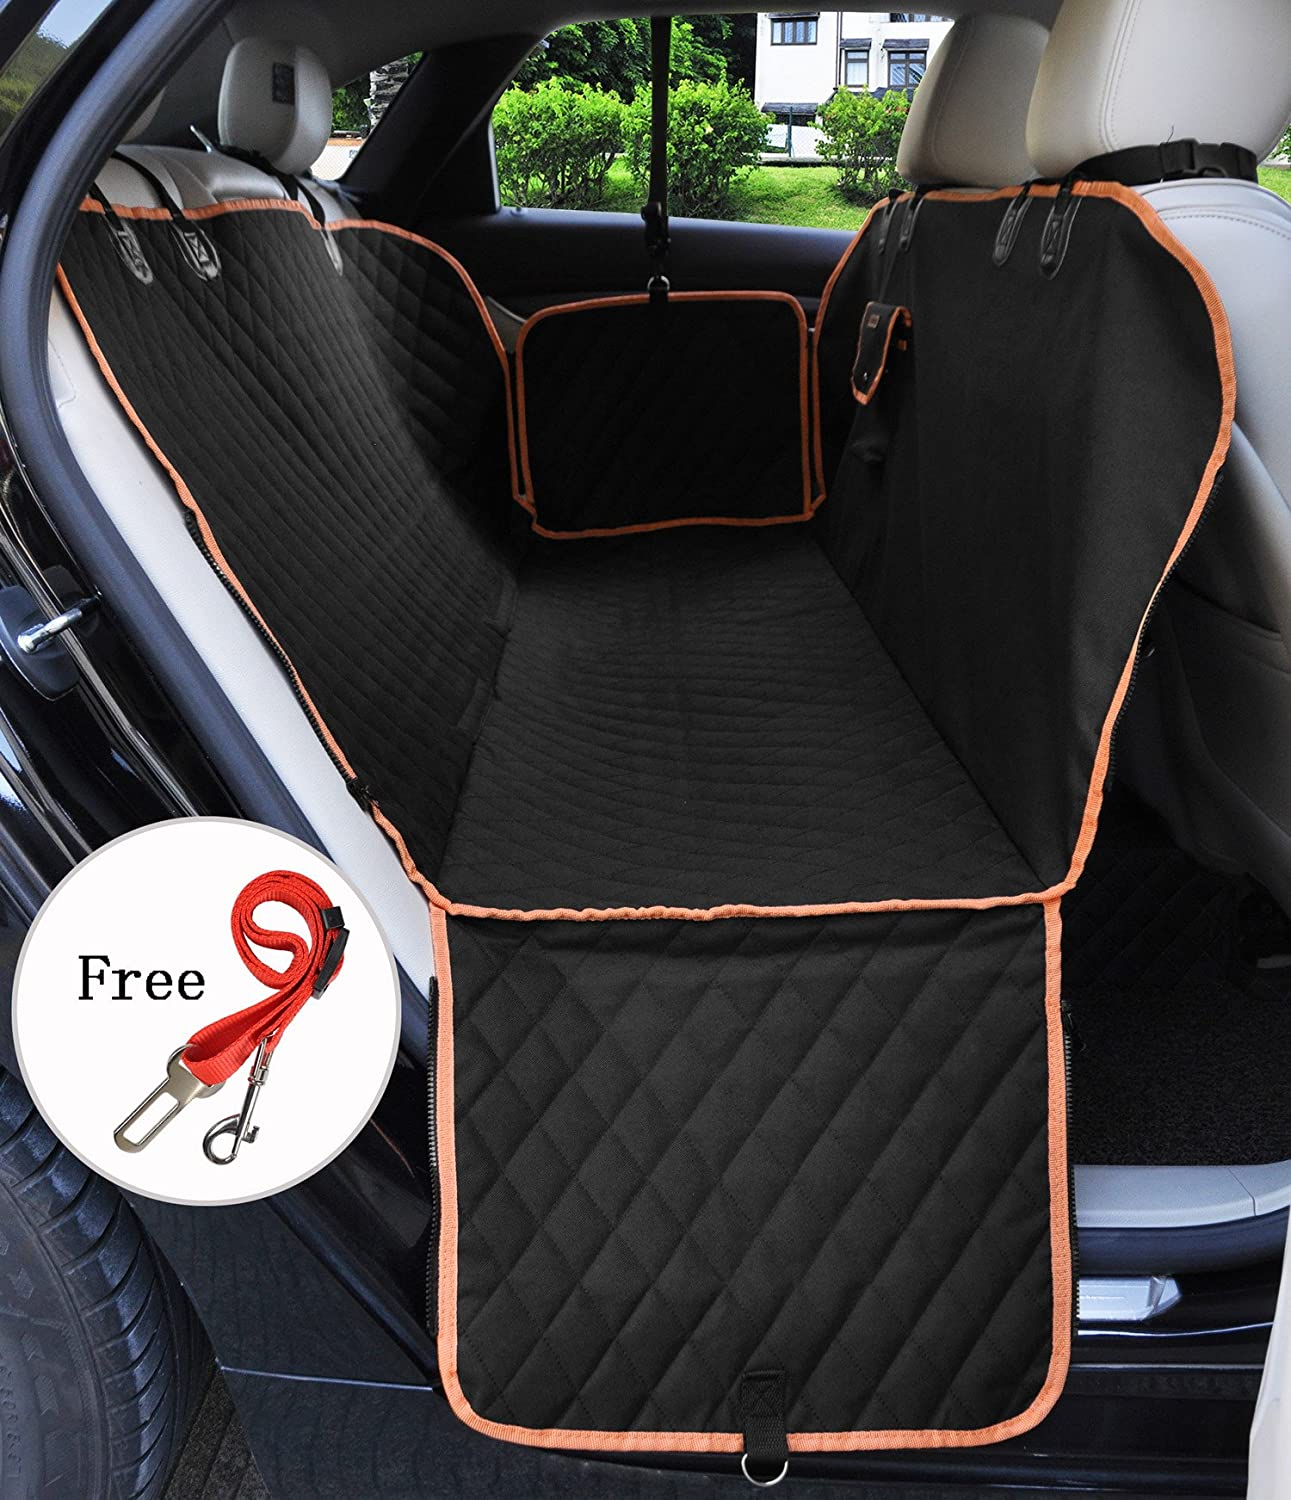 Back Seat Cover Pet Seat Covers Car Waterproof Dog Back Seat Cover Hammock Style Zipper Design Predector Washable Universal Dog Car Cover Seat for Cars Truck and SUVs Black